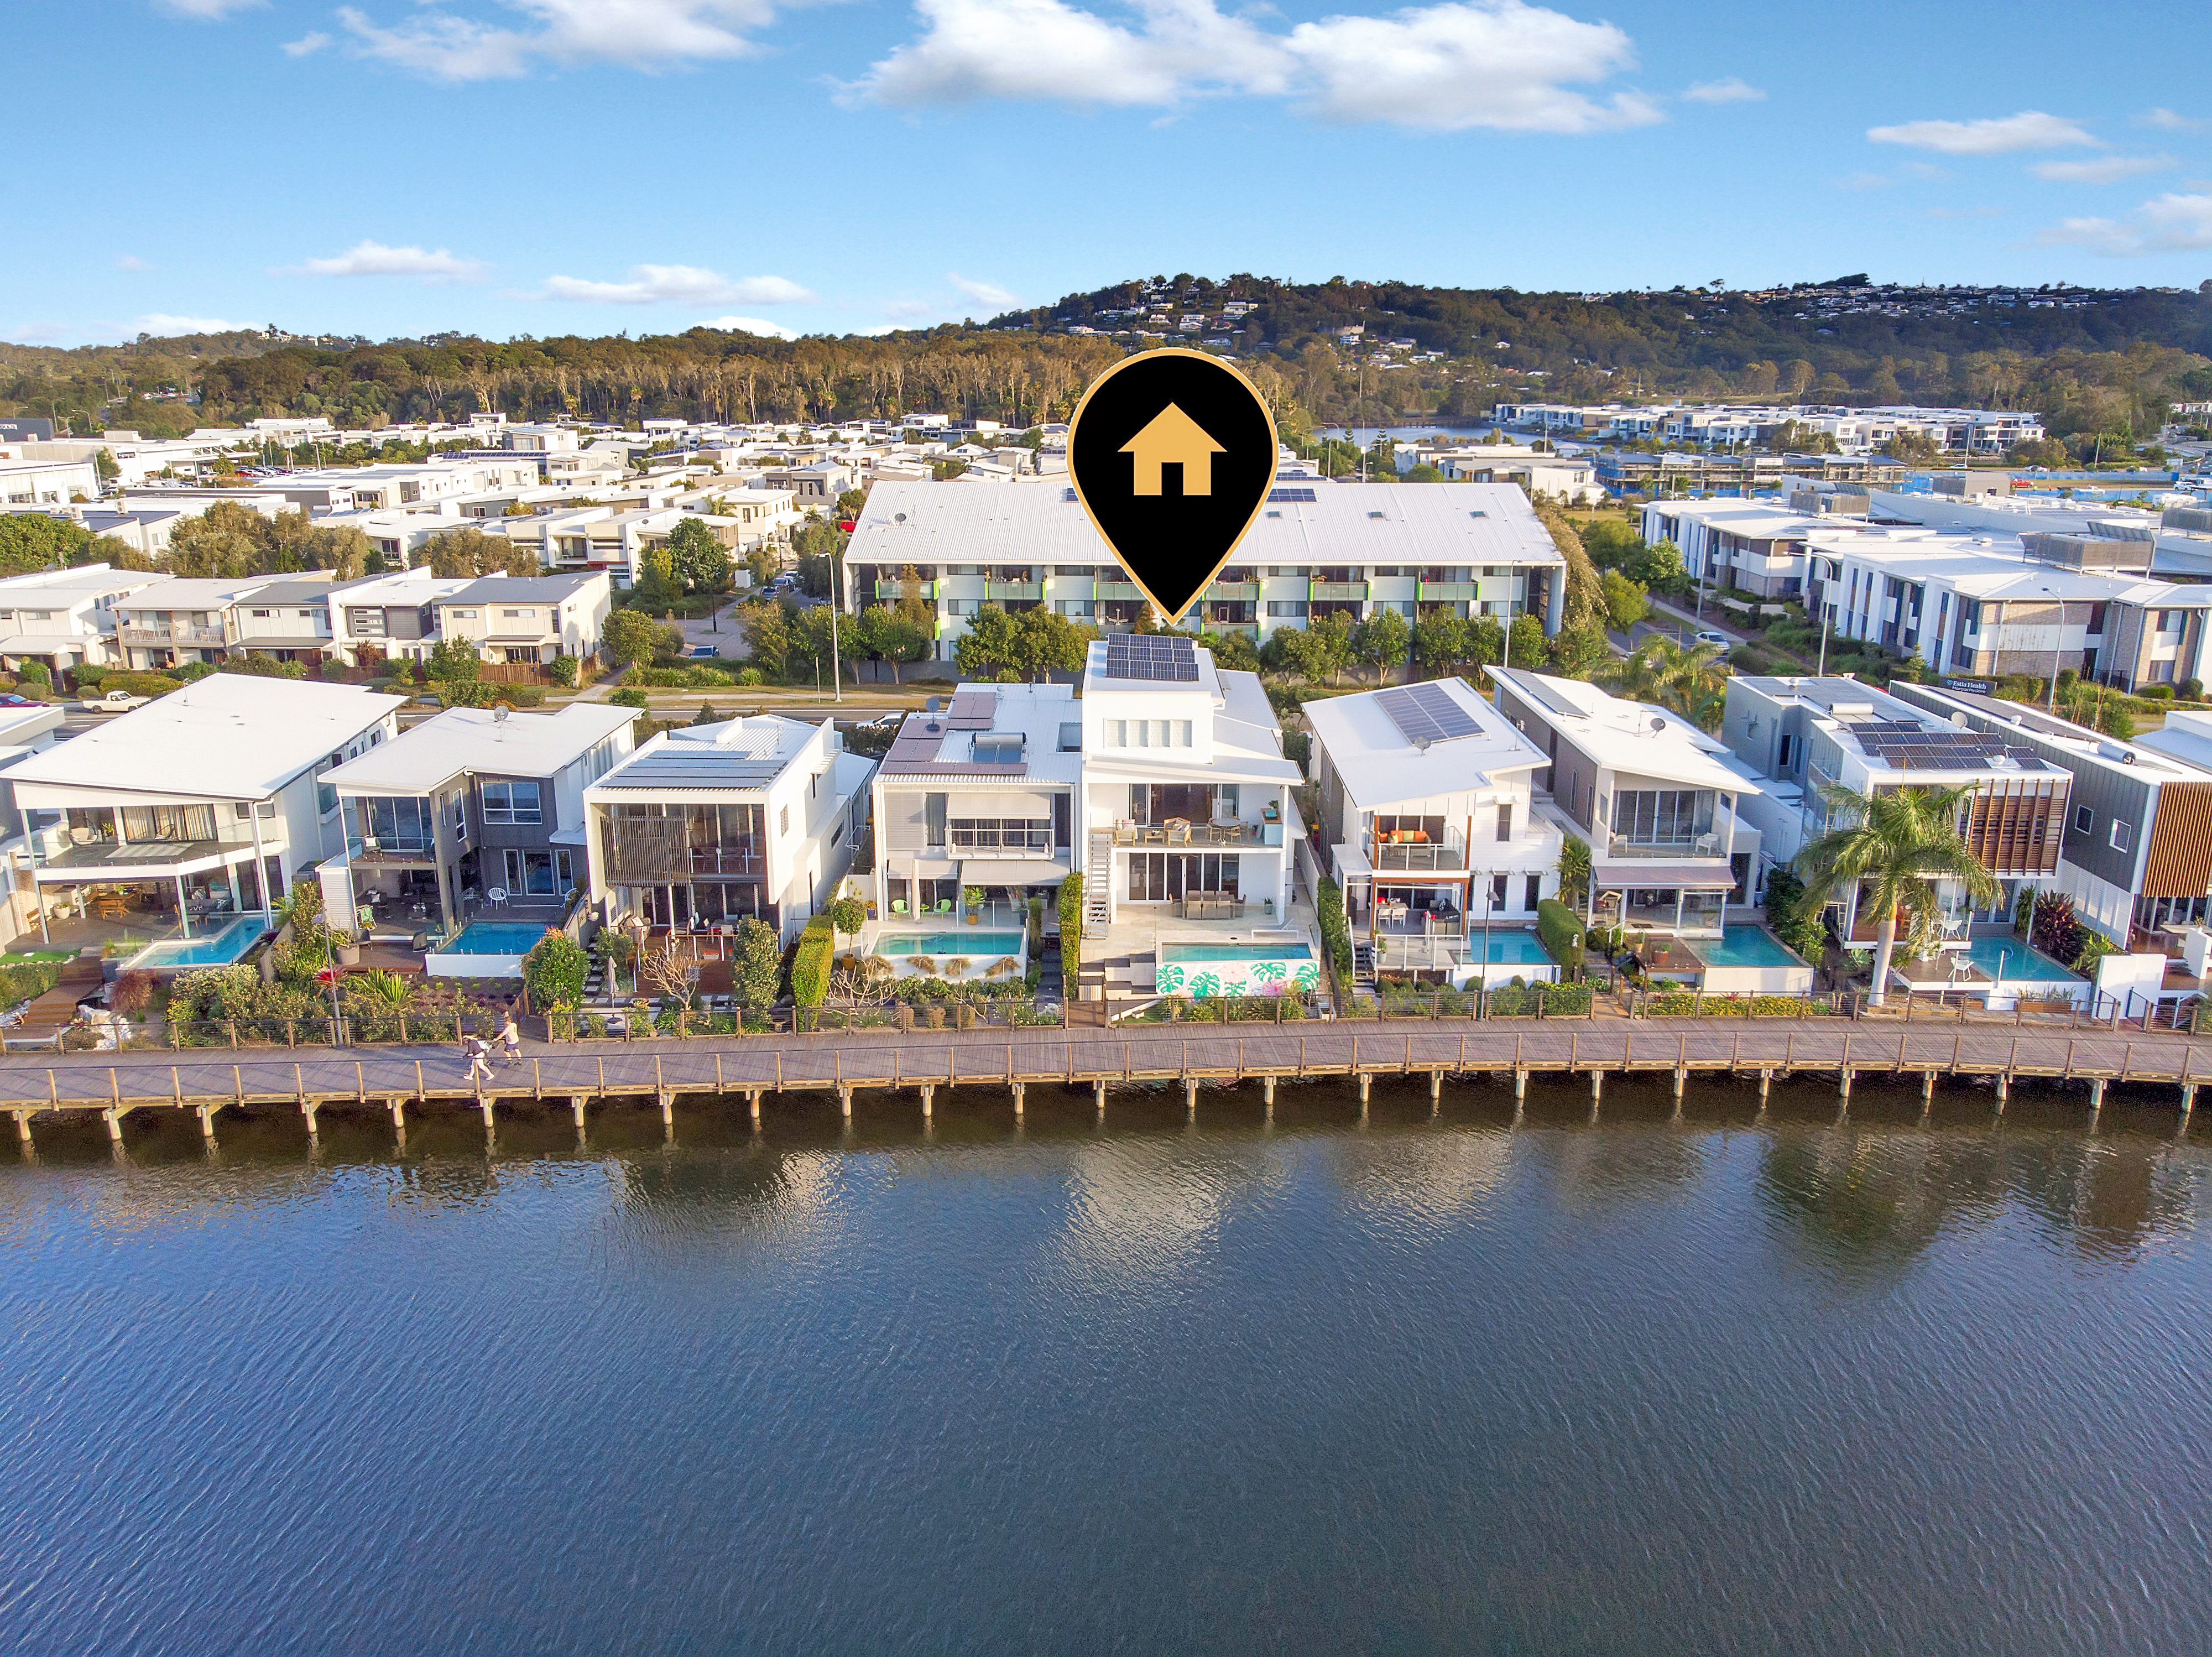 North Facing, Dual Occupancy Stunner in Sunshine Cove